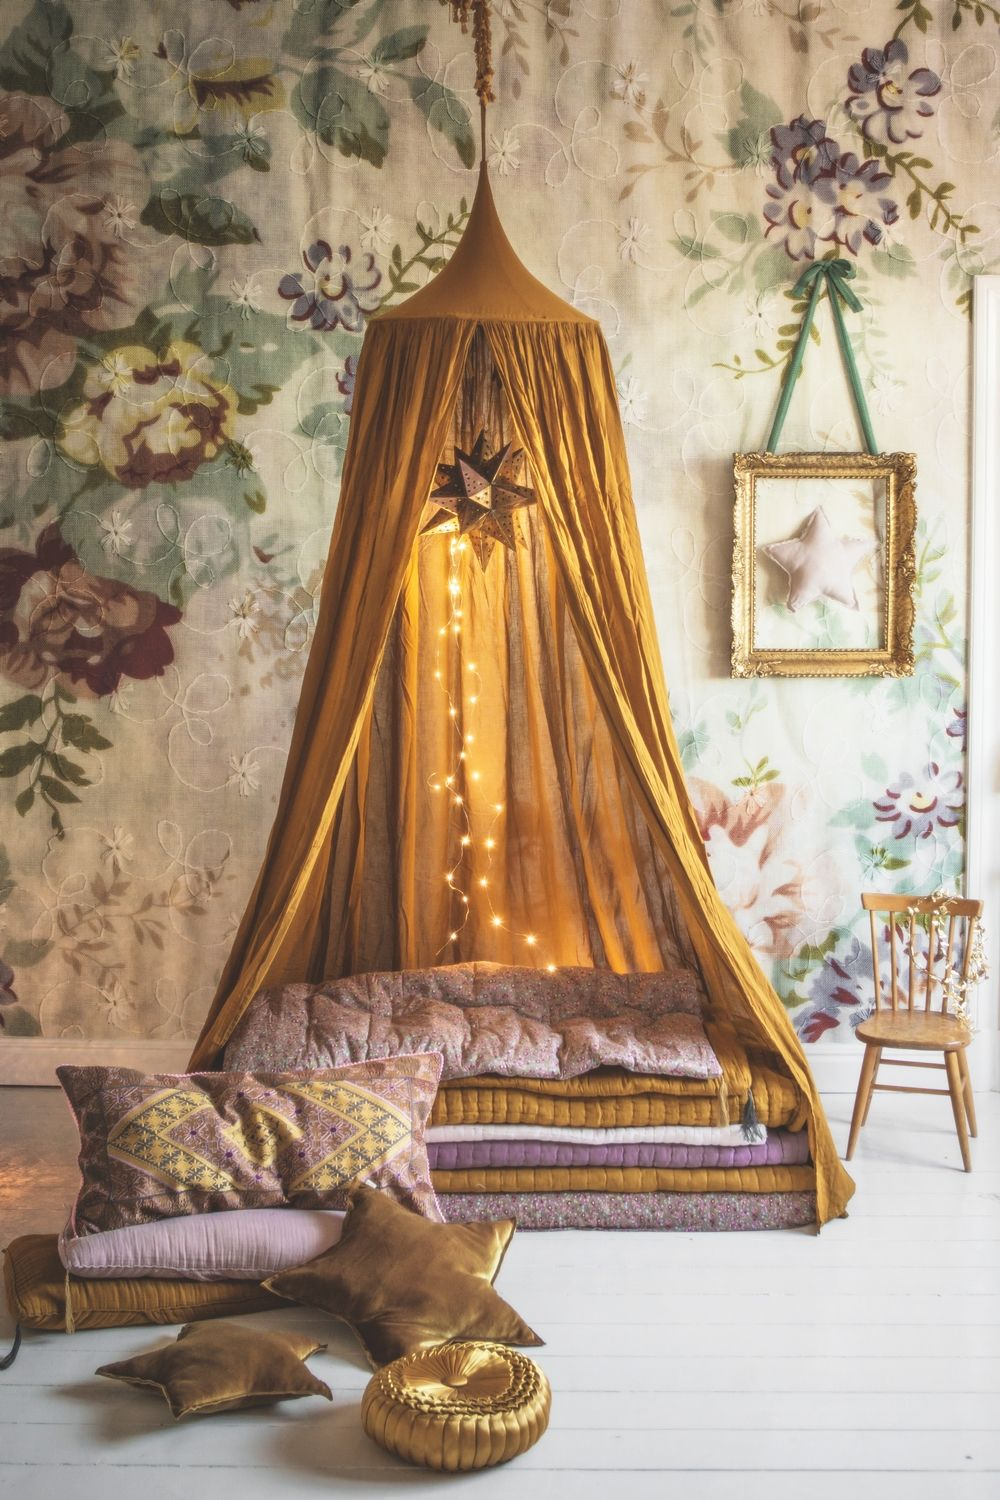 5b9116c8c2d9231571107cded712c34d Papasan Bedroom Decorating Tips on bedroom candles, bedroom cleaning tips, color tips, bedroom diy, bedroom home decor, kitchen tips, bedroom storage tips, bedroom furniture tips, bedroom organization tips, home tips, bedroom interior design tips, bedroom product designs, bedroom desk for small spaces, bedroom yellow, bedroom vintage, bedroom pools, bedroom decoration for small space, decor tips, bedroom furniture product,